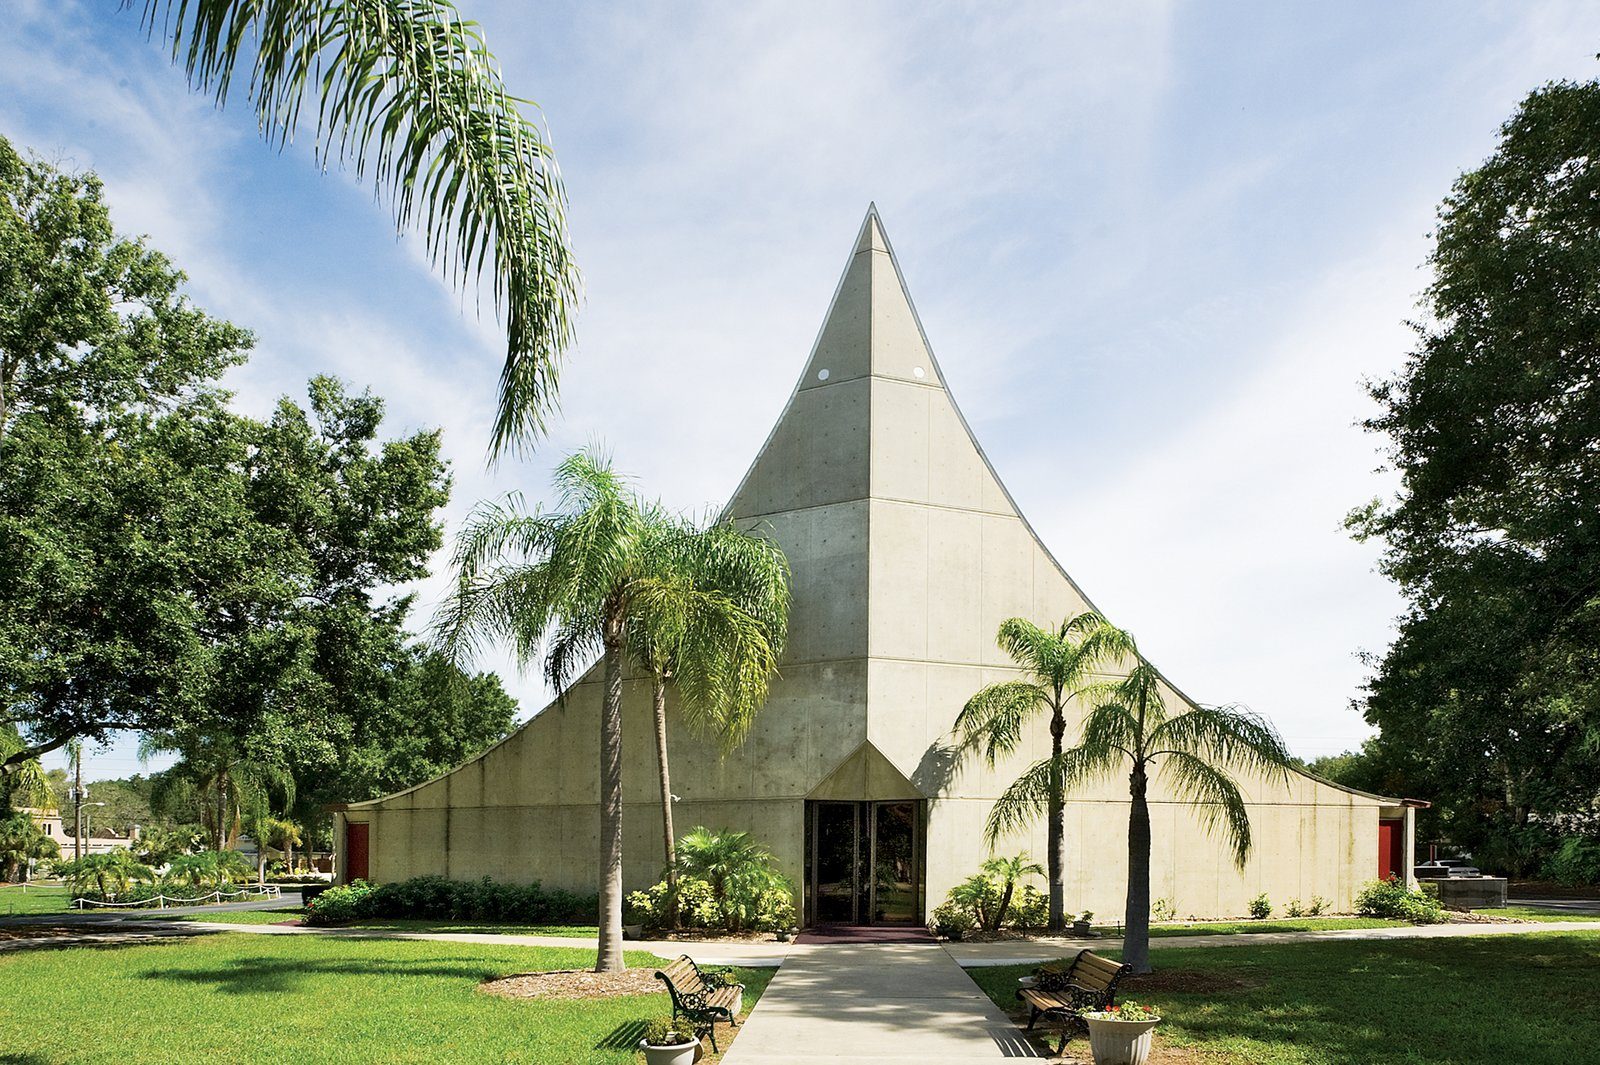 St. Paul Lutheran Church Sanctuary 1968, Sarasota, FL Architect Victor Lundy, FAIA  Victor A. Lundy, FAIA